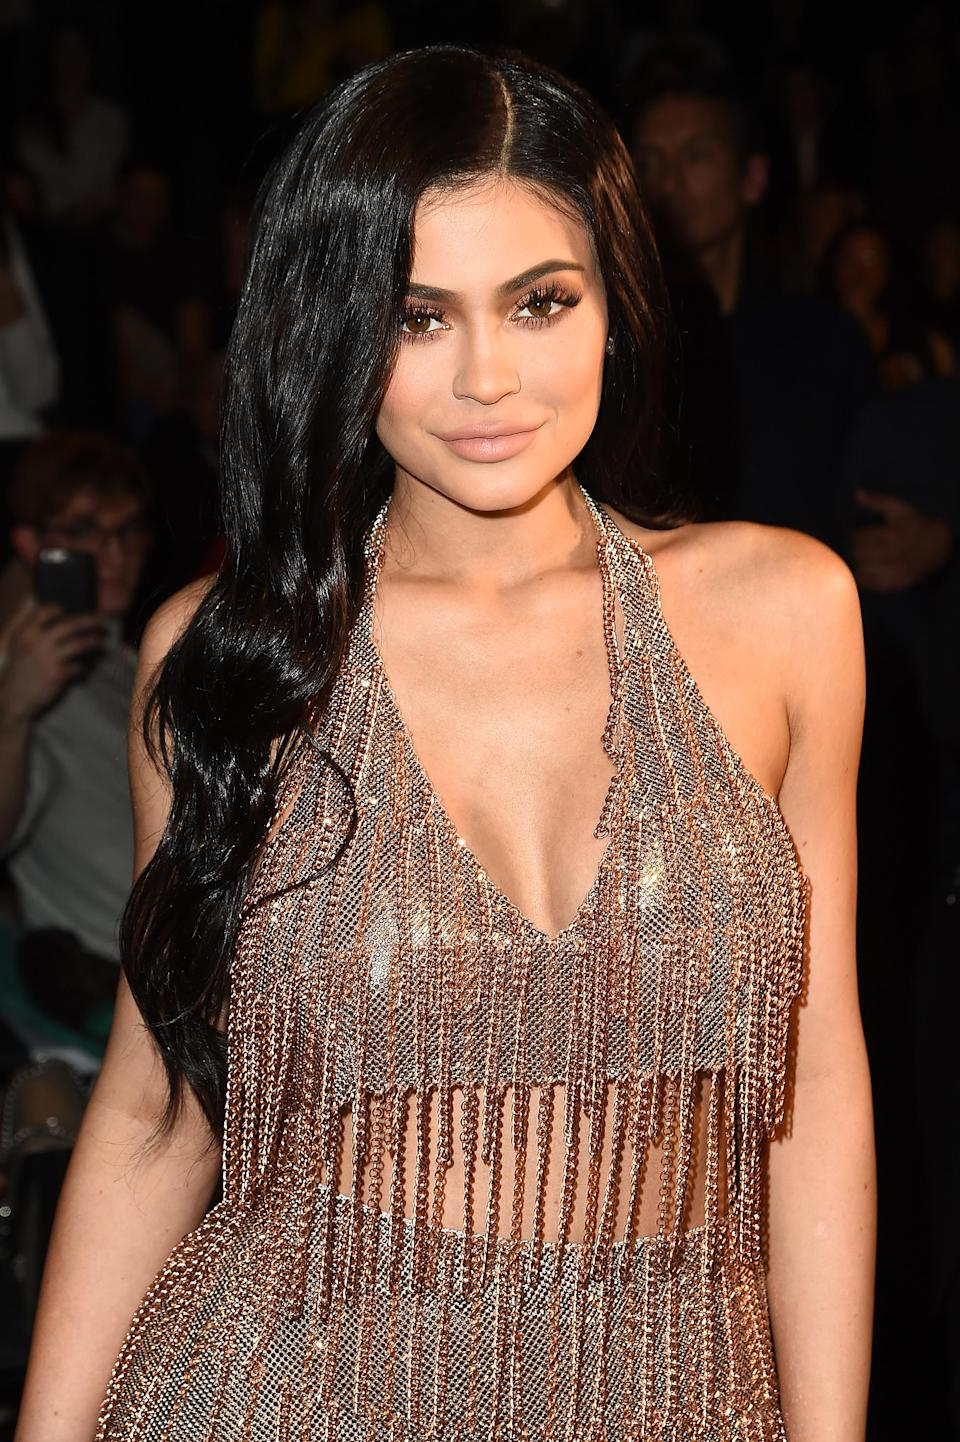 "<p>For years, social media mogul and lip kit extraordinaire Kylie Jenner denied having lip fillers until an interview with <a href=""https://www.allure.com/story/kim-kardashian-kylie-jenner-beauty-advice"" rel=""nofollow noopener"" target=""_blank"" data-ylk=""slk:Allure"" class=""link rapid-noclick-resp""><em>Allure</em></a> in 2016. ""I definitely made my lips a little too big at one point,"" she revealed. ""I got excited and felt like I needed to do a lot."" <em>[Photo: Getty]</em> </p>"